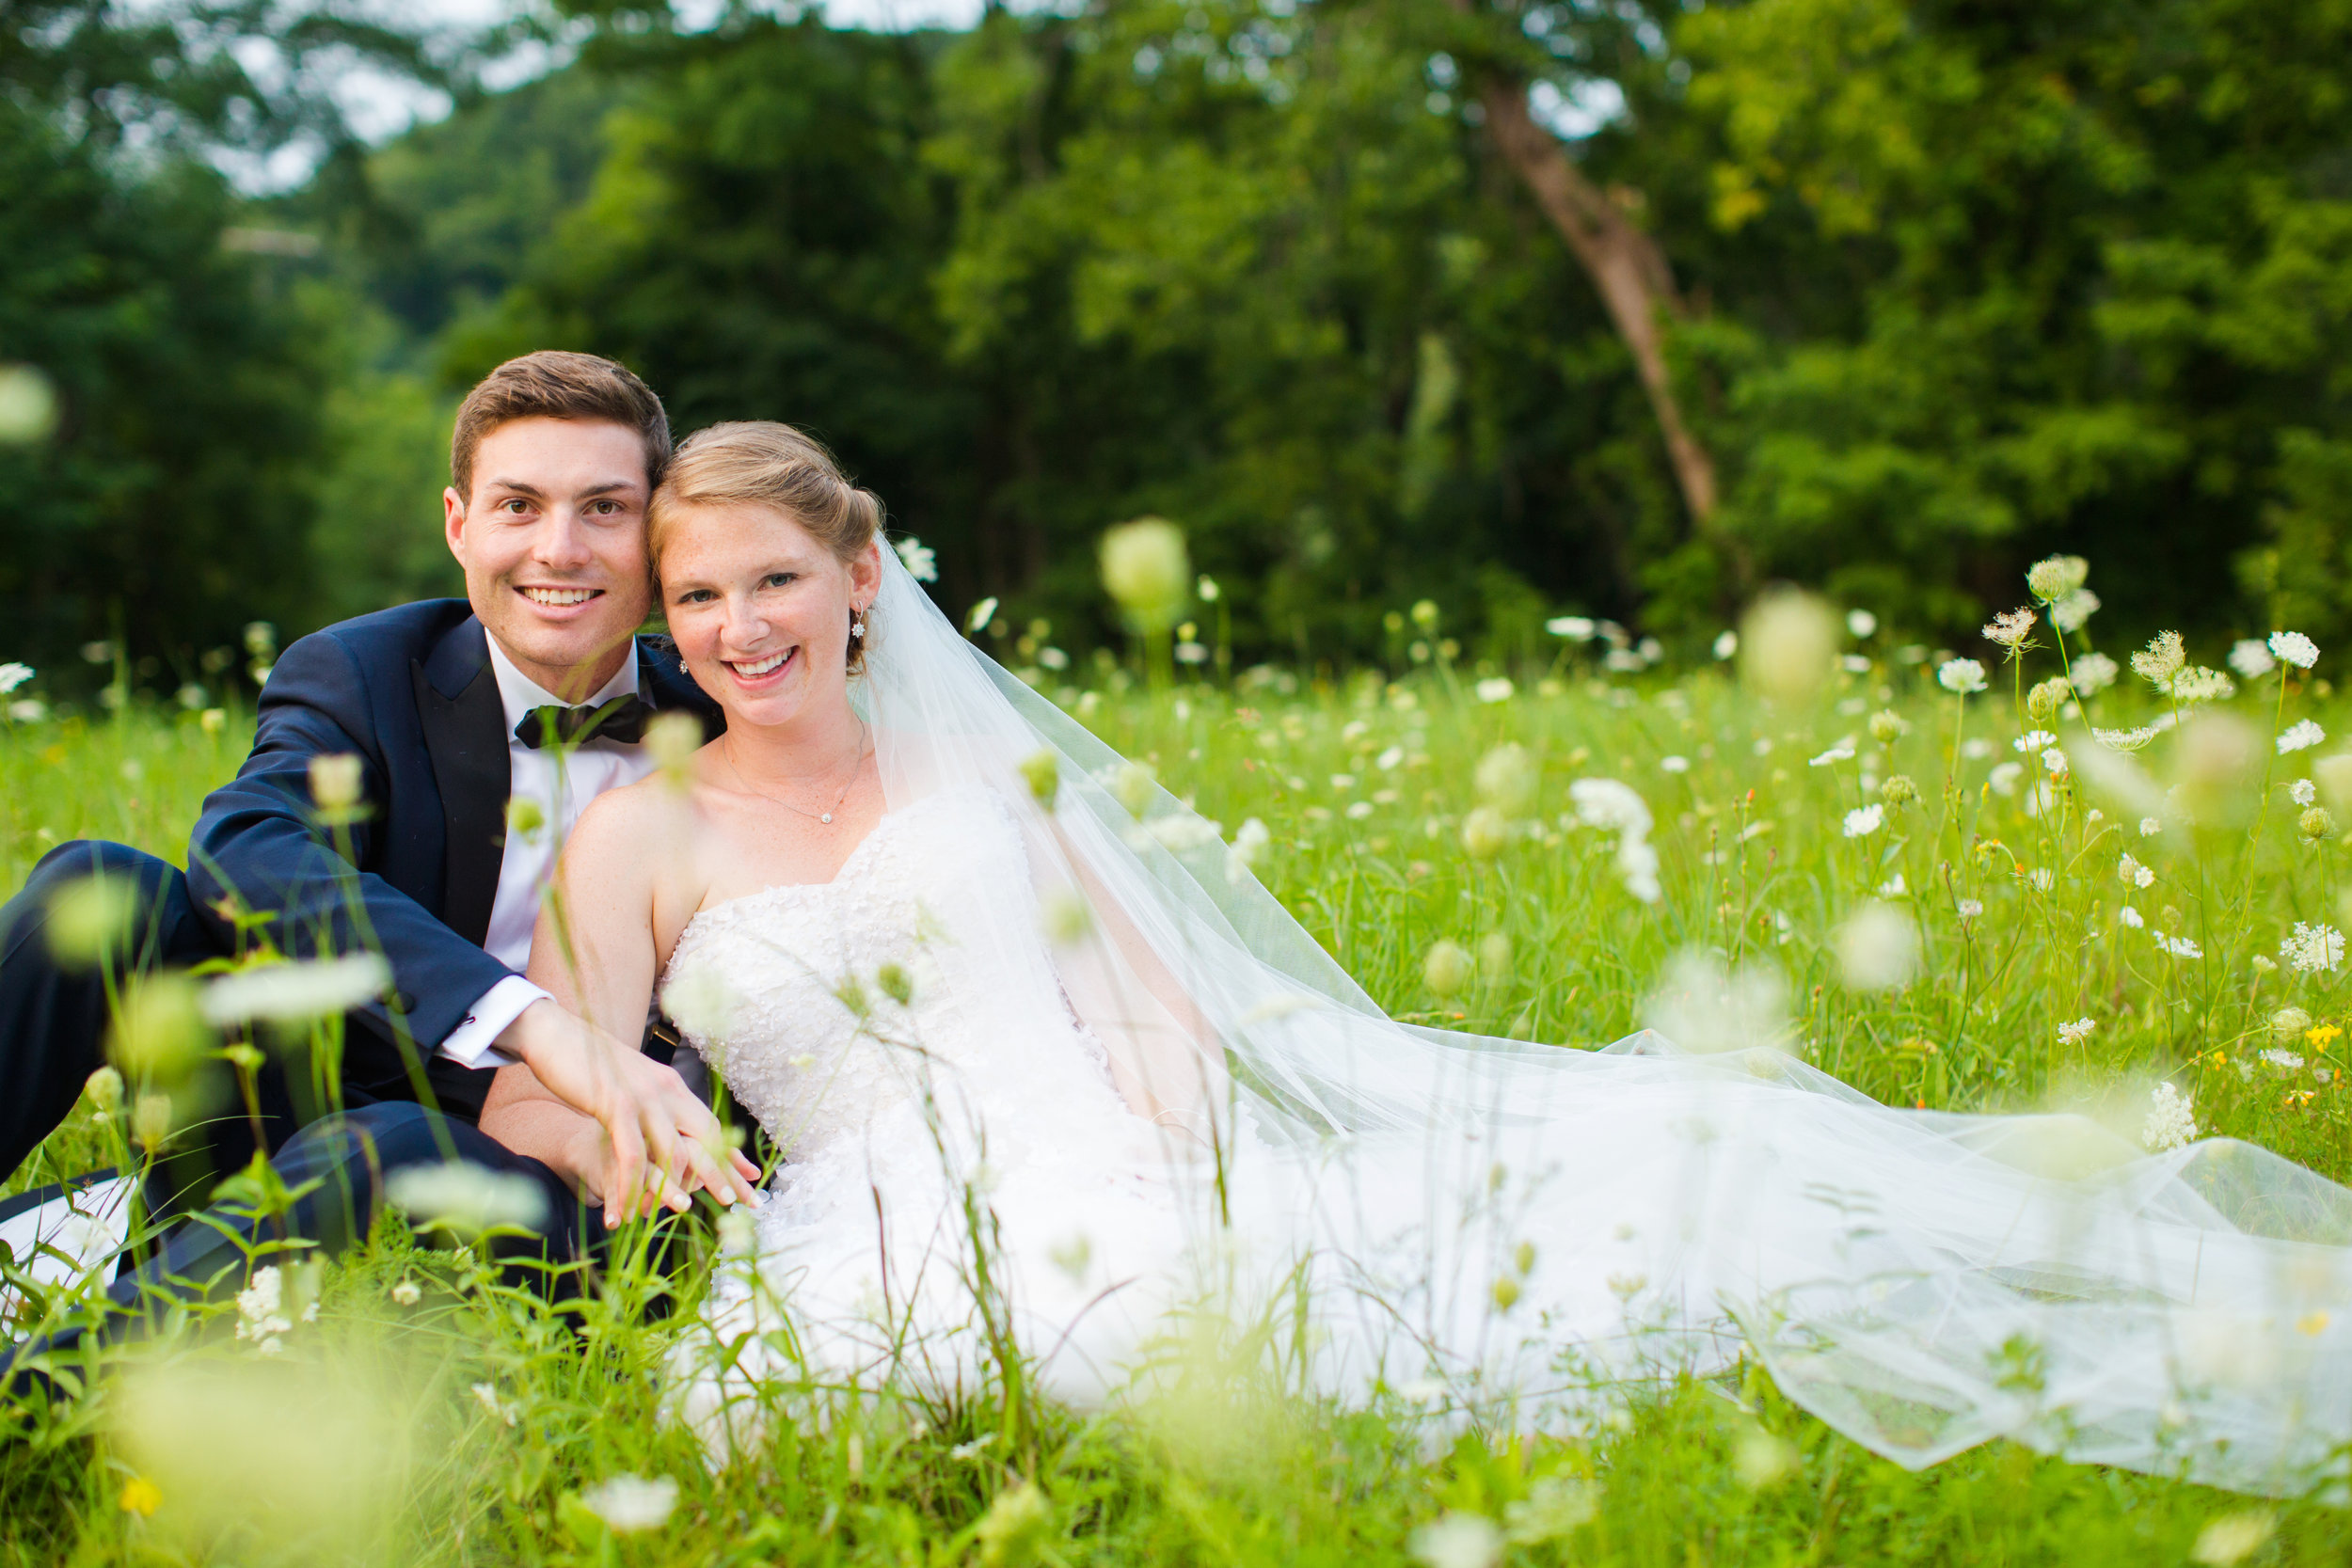 Margaret Tait & Schuyler Routt | Private Residence & Genesee Valley Club